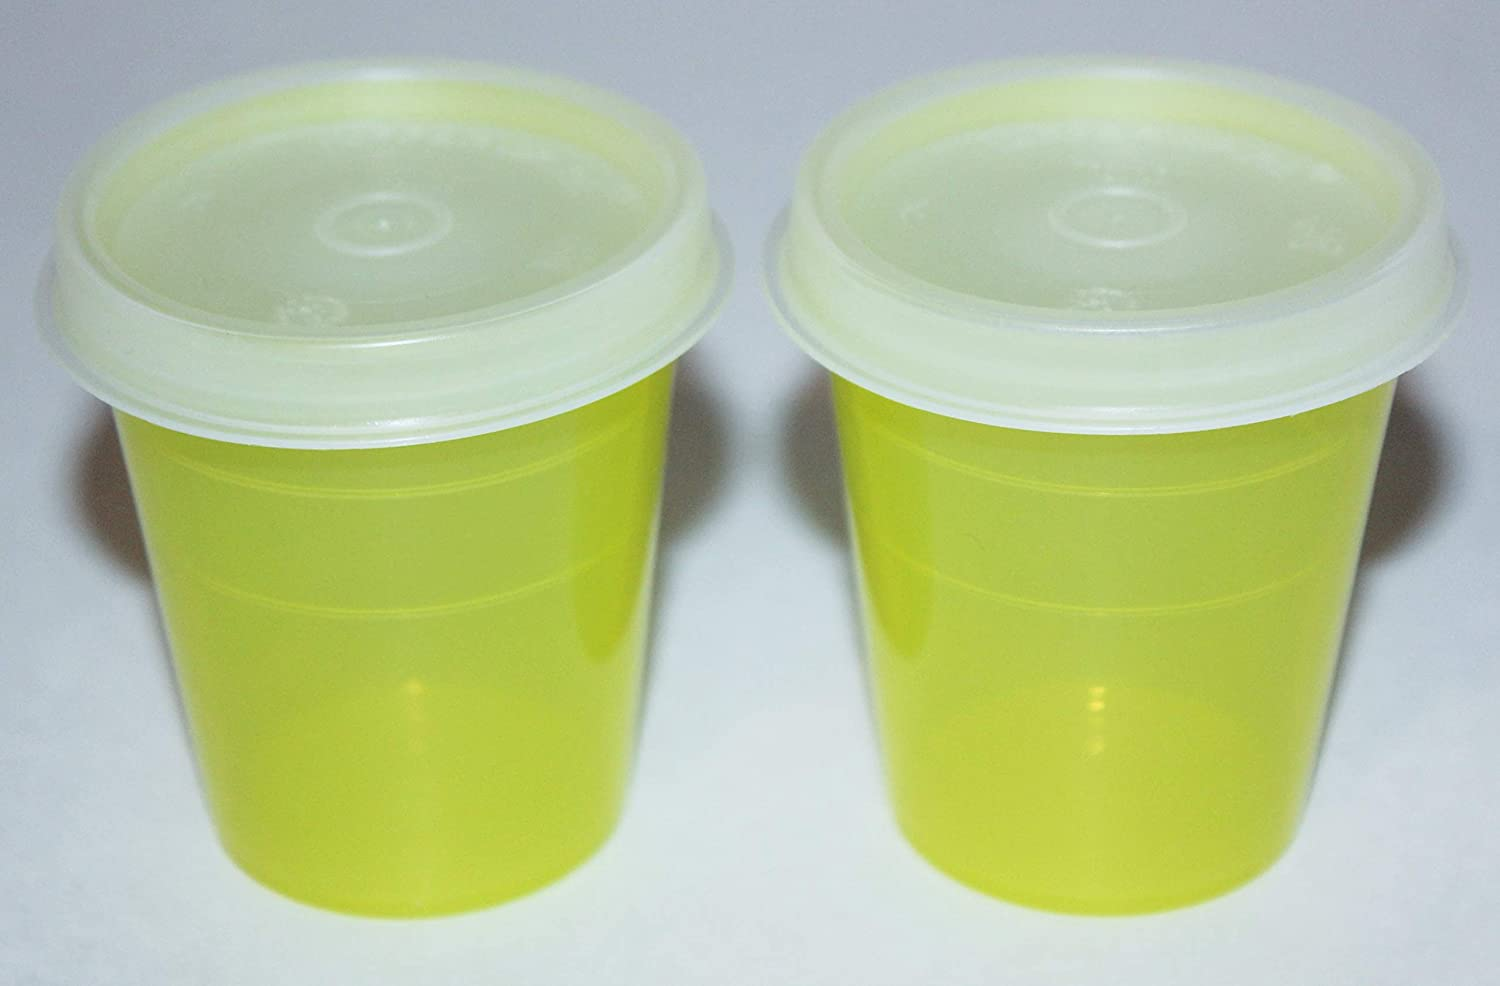 Tupperware Midgets Set of 2 Airtight 2 oz Tupper Minis in Chartreuse Yellow